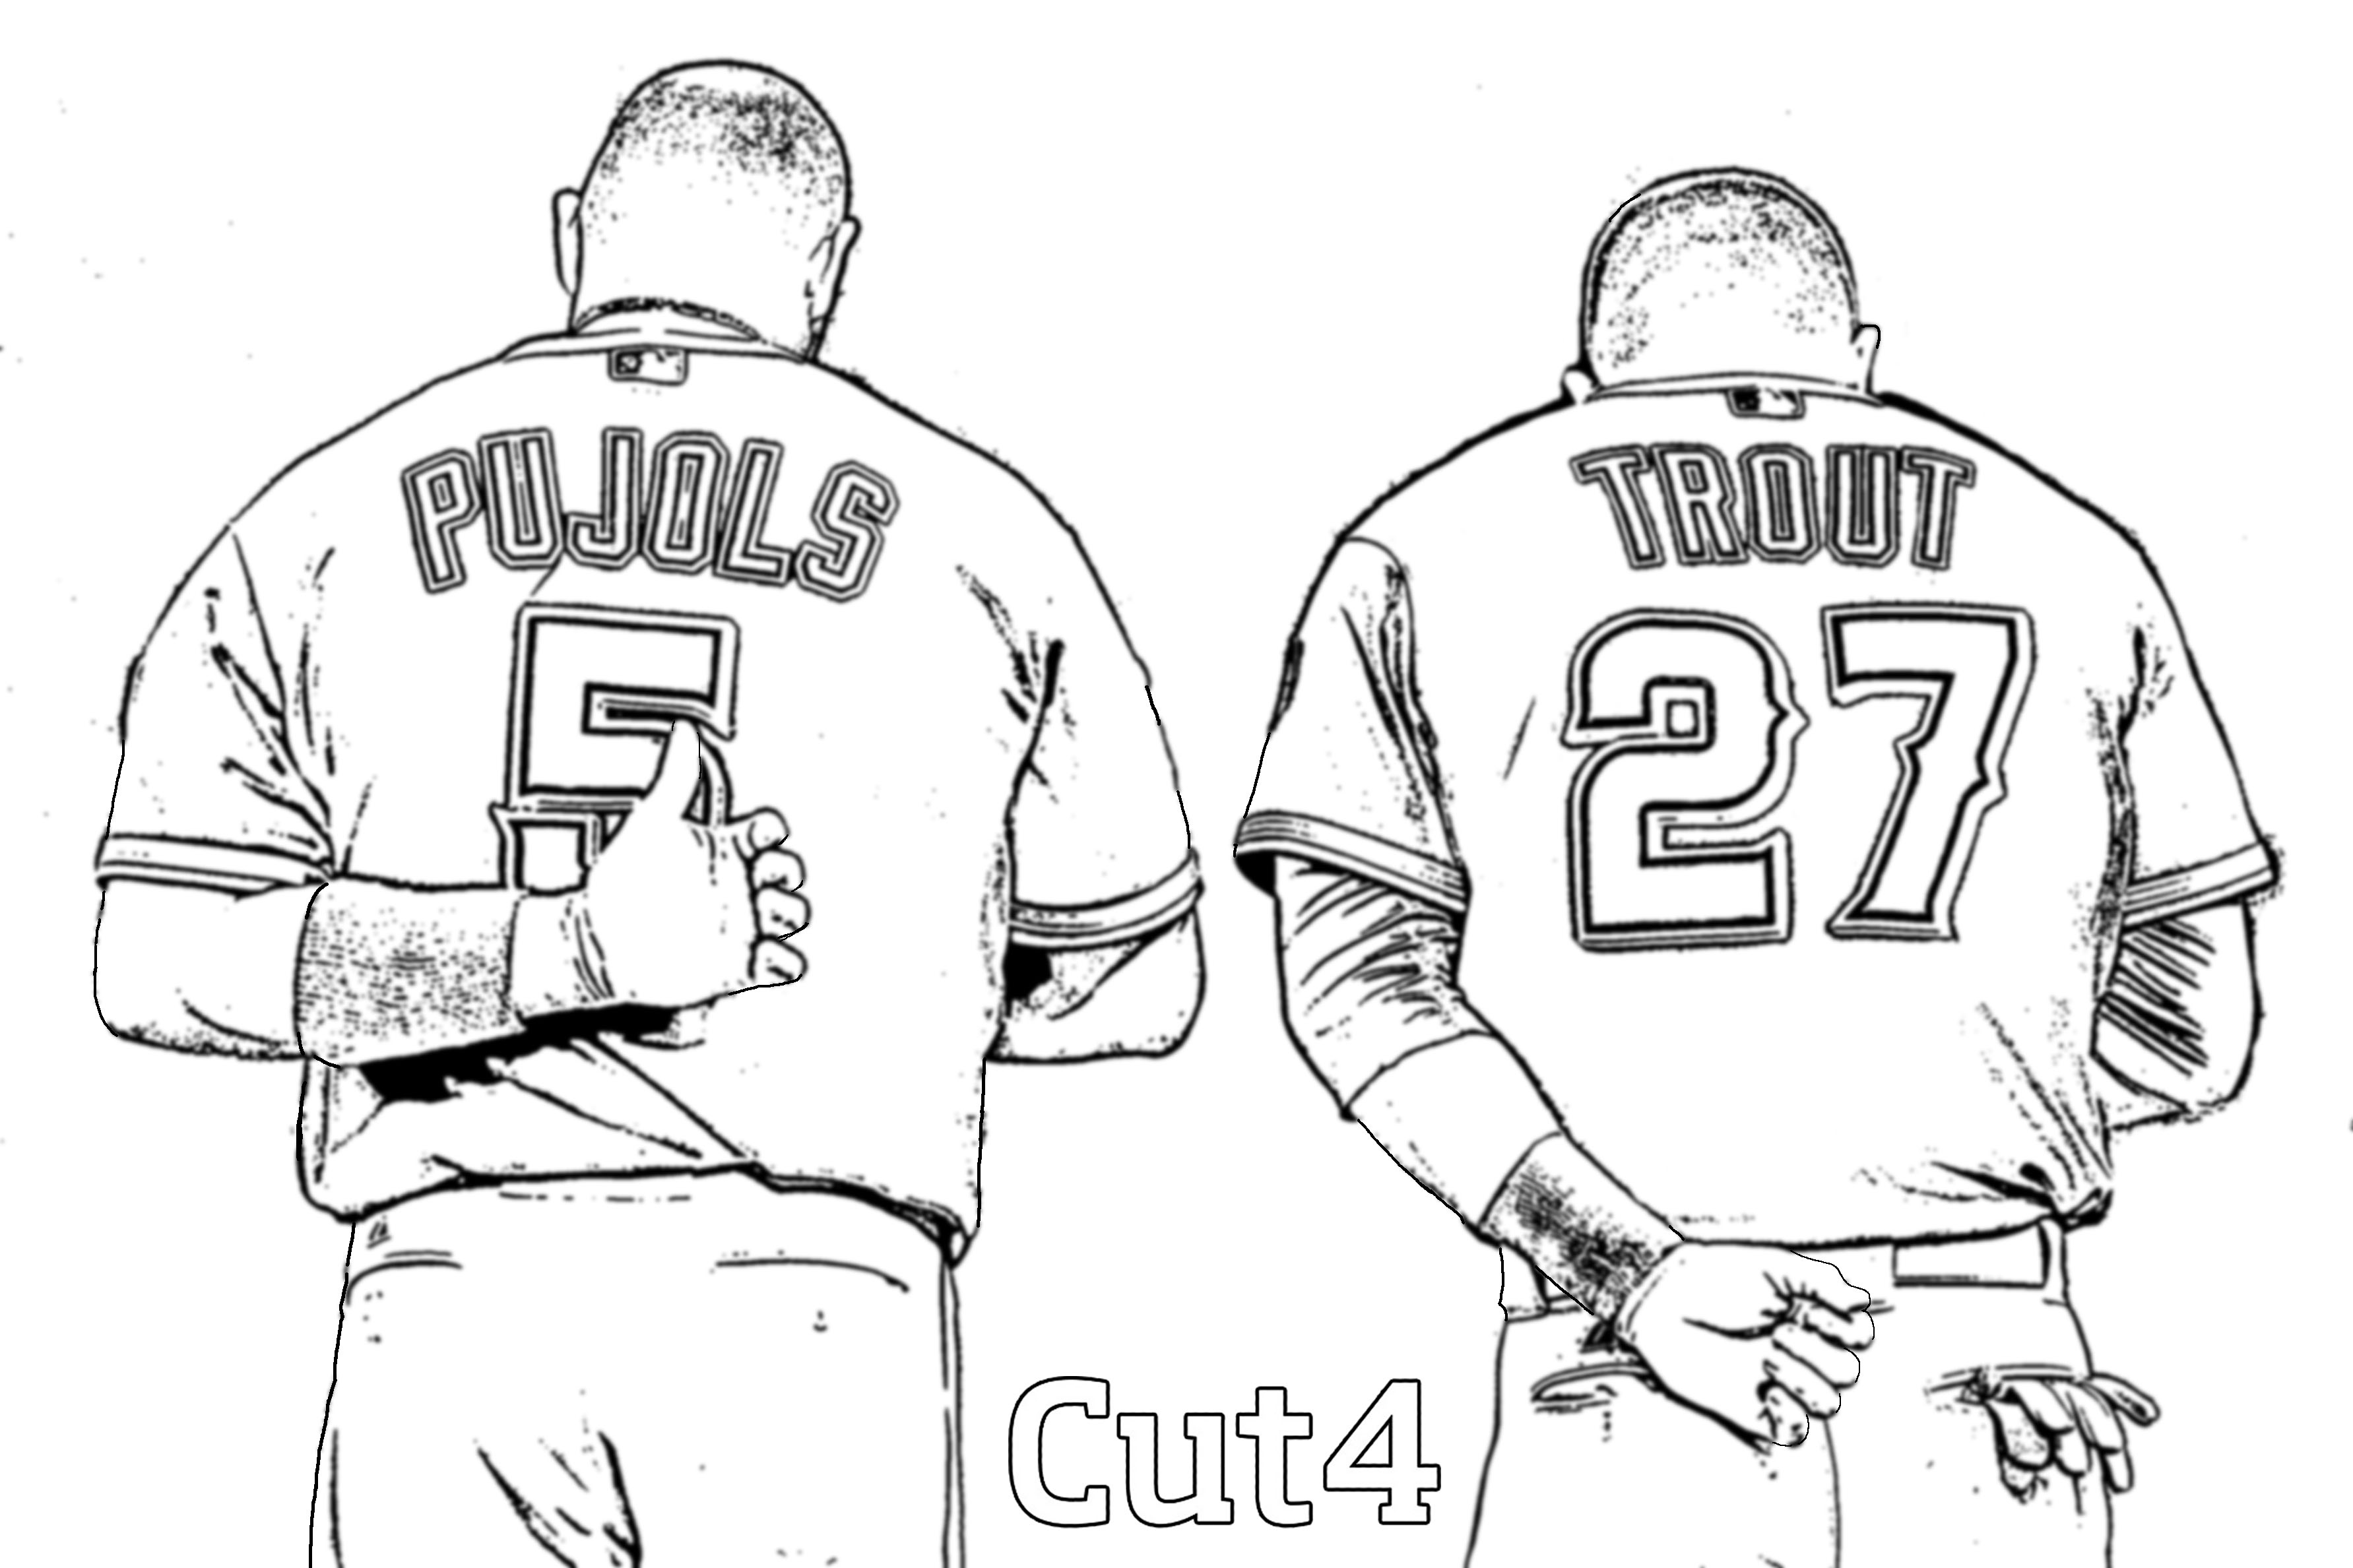 cubs baseball coloring pages chicago cubs drawing at getdrawings free download pages coloring baseball cubs